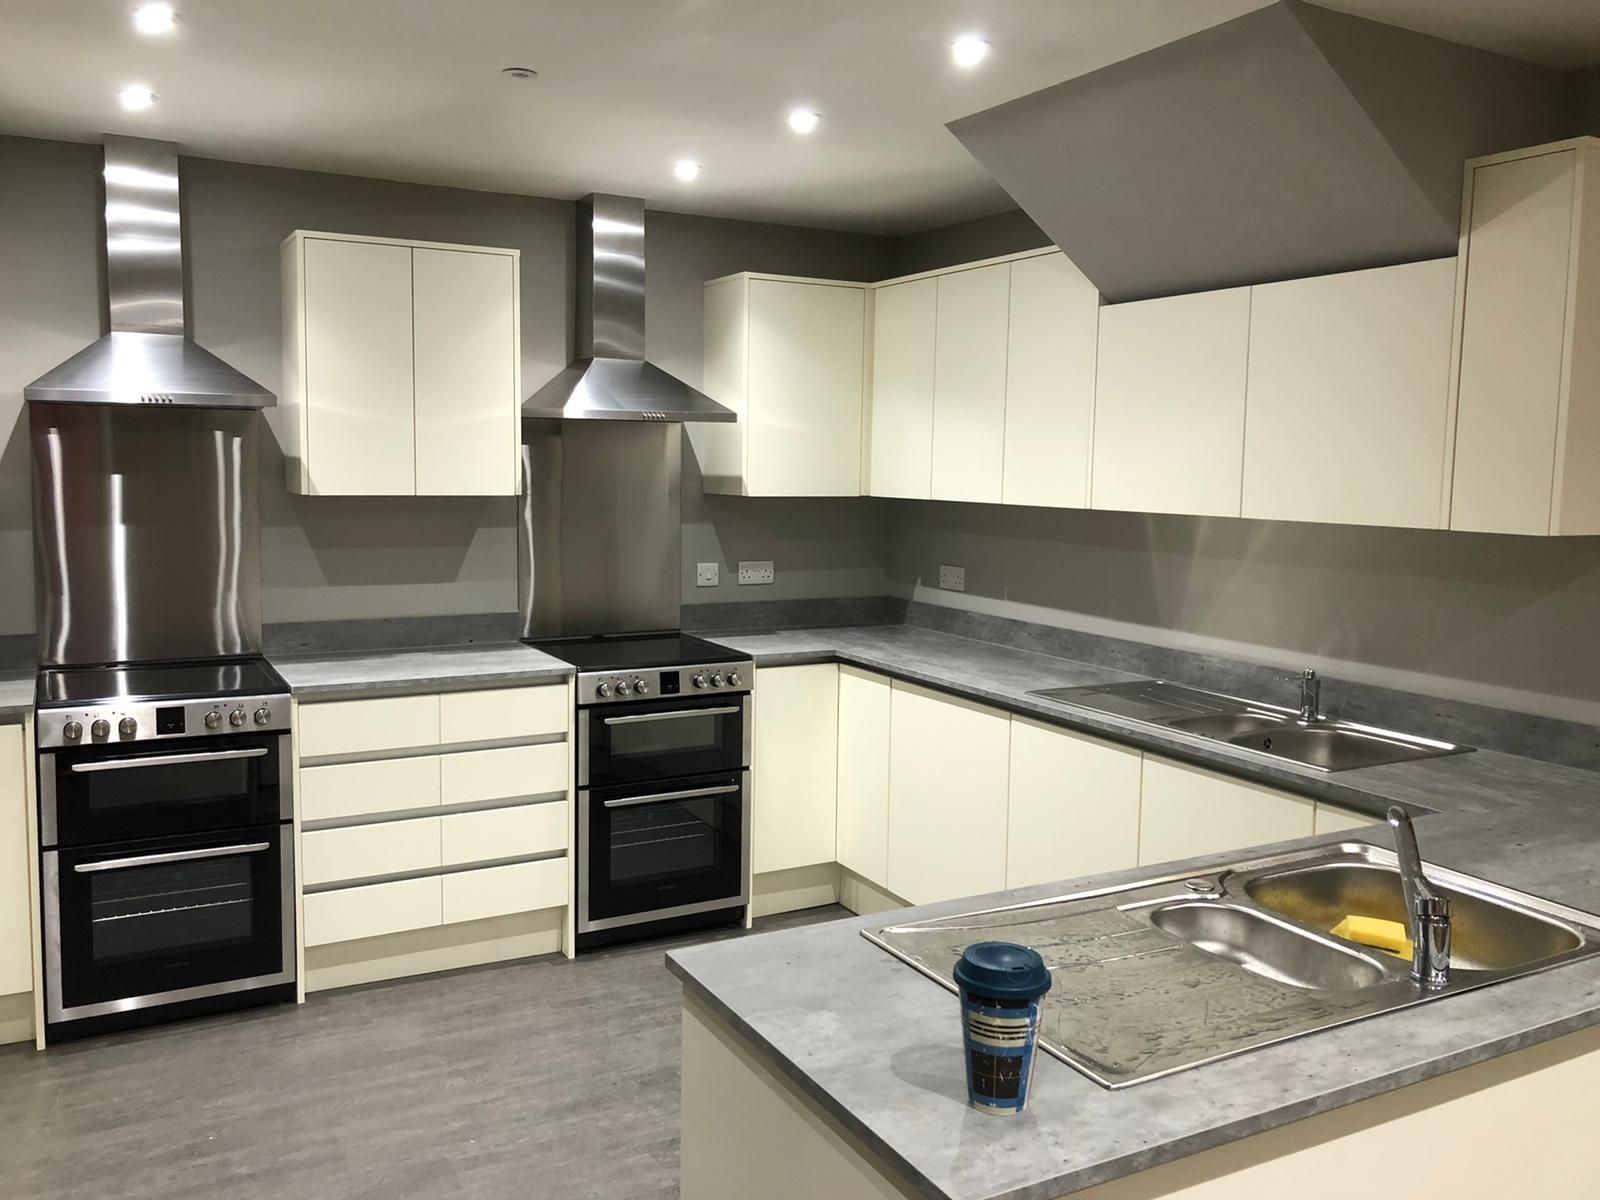 1 Bed Shared Flat/apartment To Rent - Photograph 8